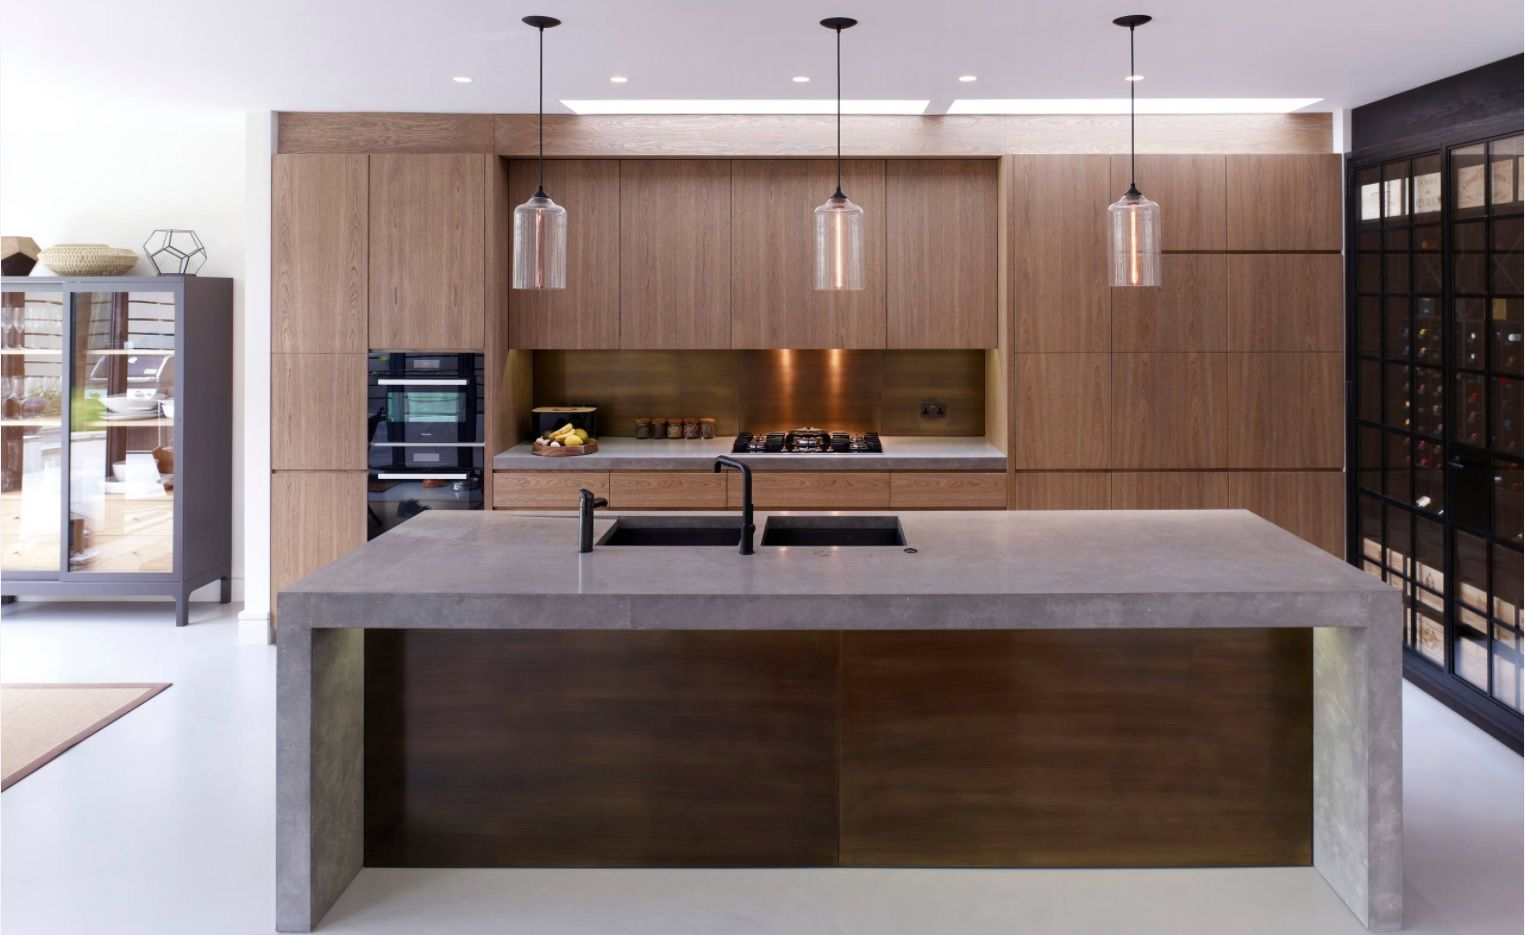 DIY Pouring Concrete Countertops. Interior Usage, Photos, Ideas. Walnut wood color theme for the kitchen